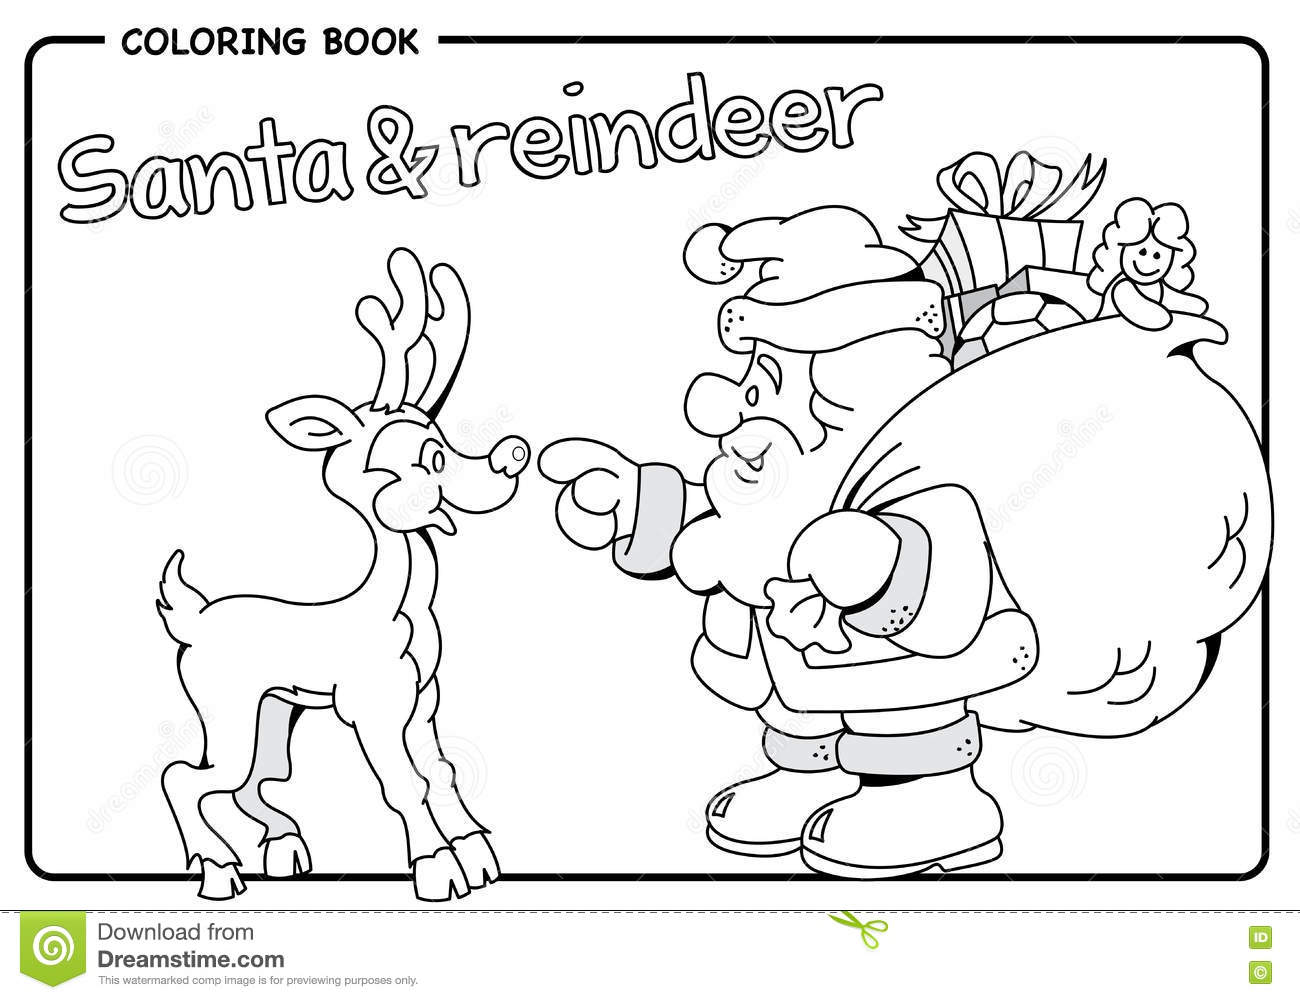 Christmas Coloring Reindeer With Santa Claus Carrying Sack Of Gifts